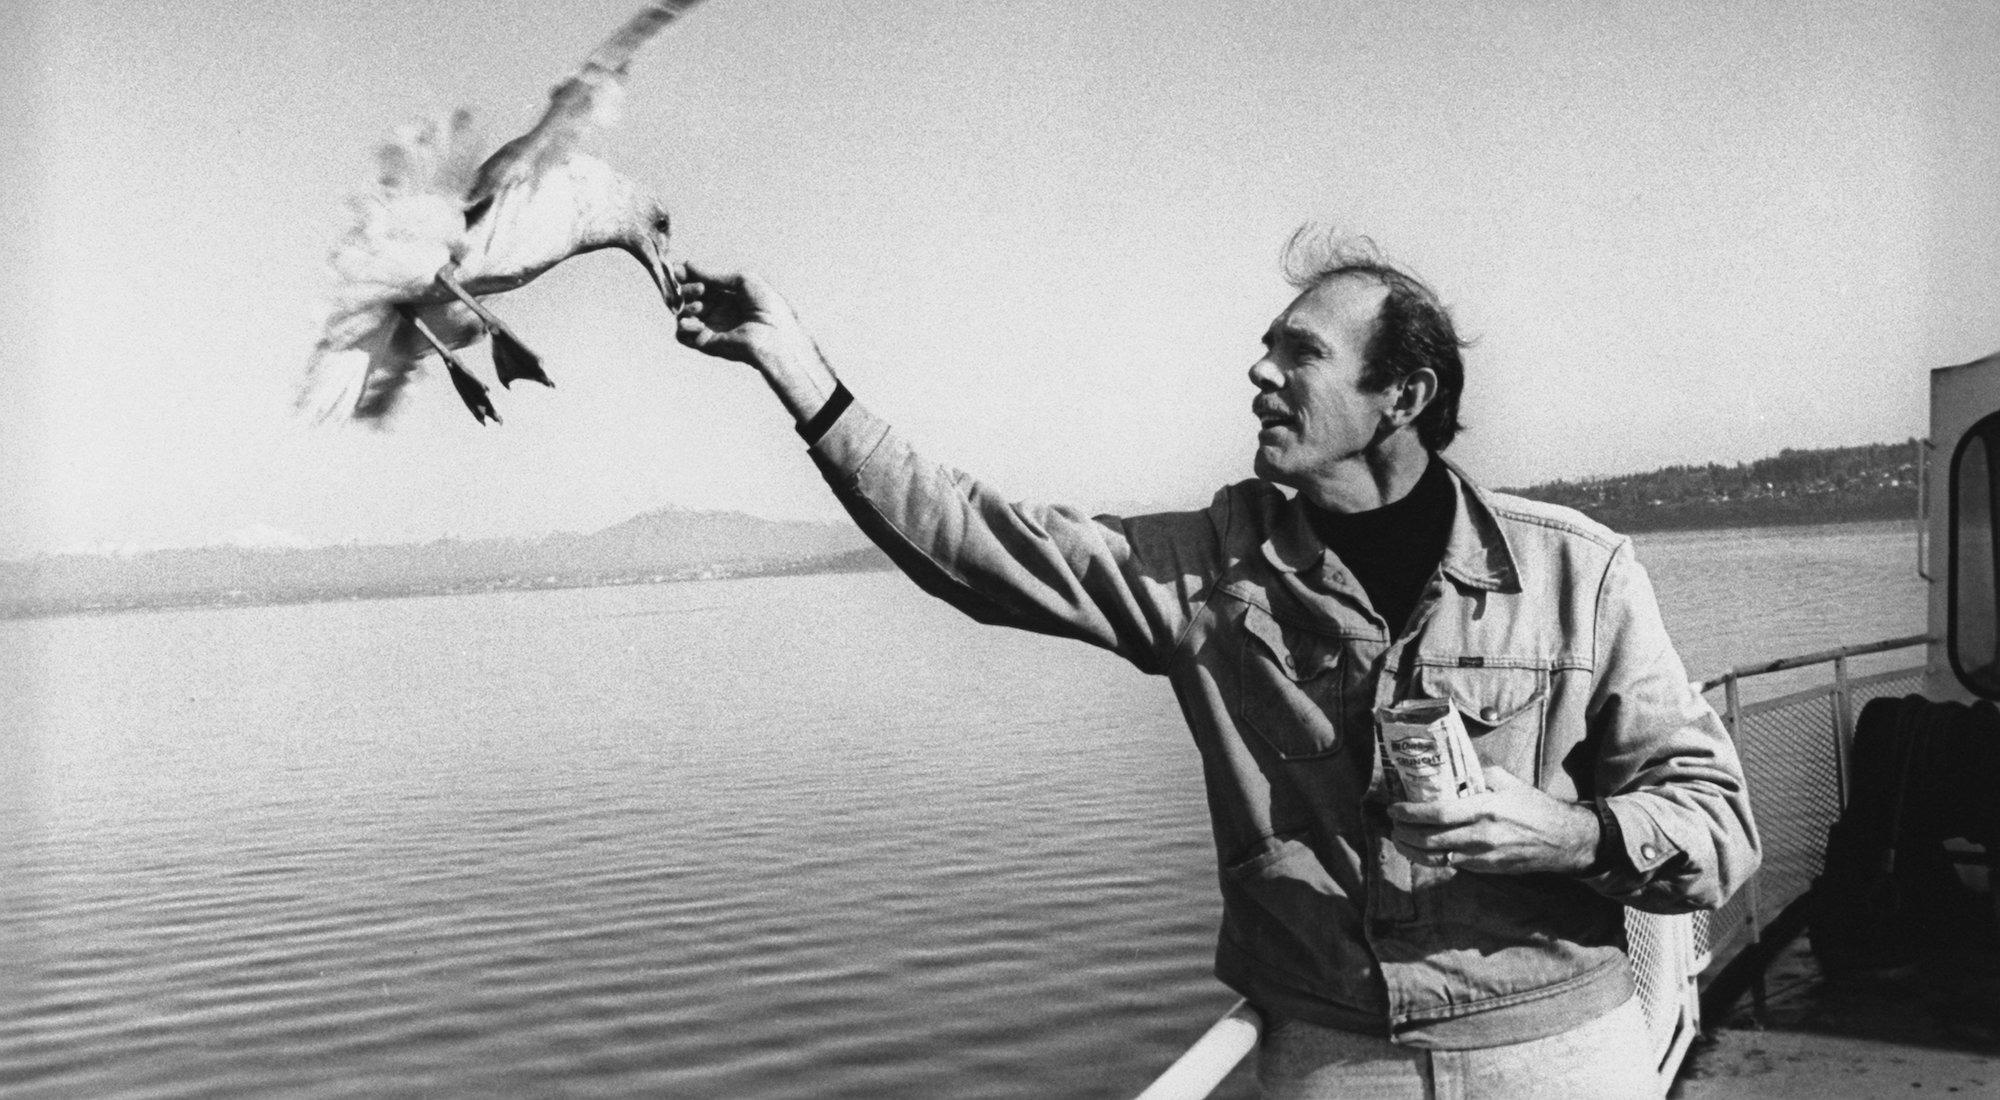 El escritor Richard Bach. 128296: Author/paraglider Richard Bach hand-feeding a seagull on the wing as he stands on deck of the of the Washington State Ferry on the Puget Sound.